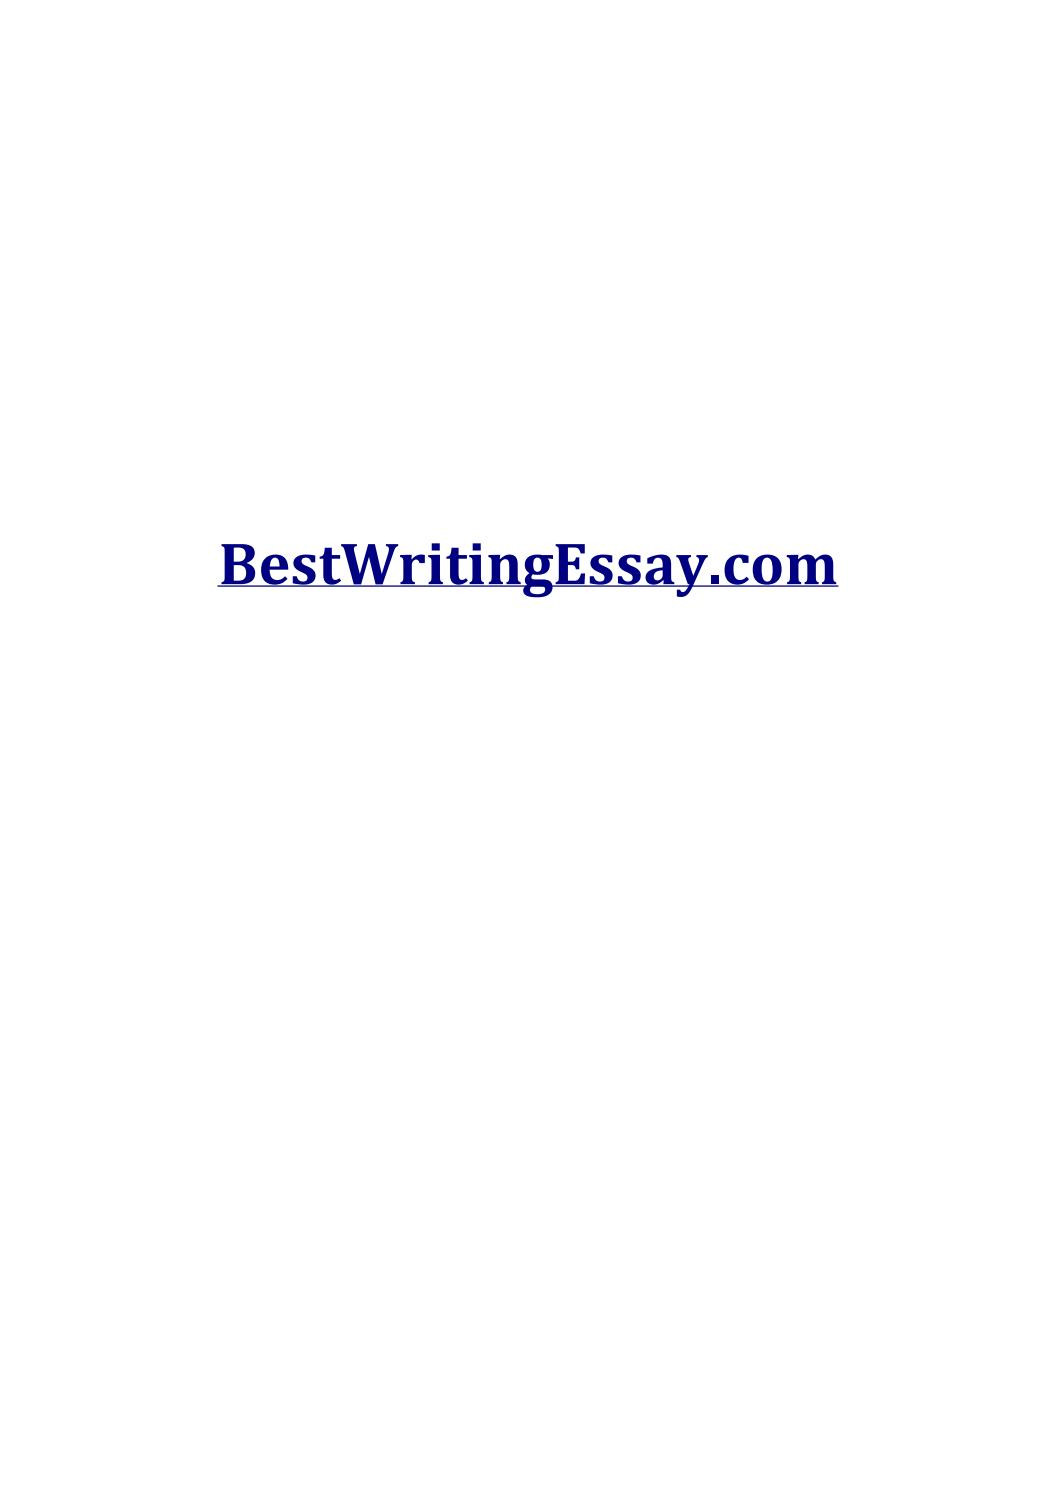 Rhetorical Analysis Outline Worksheet Essay Outline Worksheet by Danieljvbap issuu